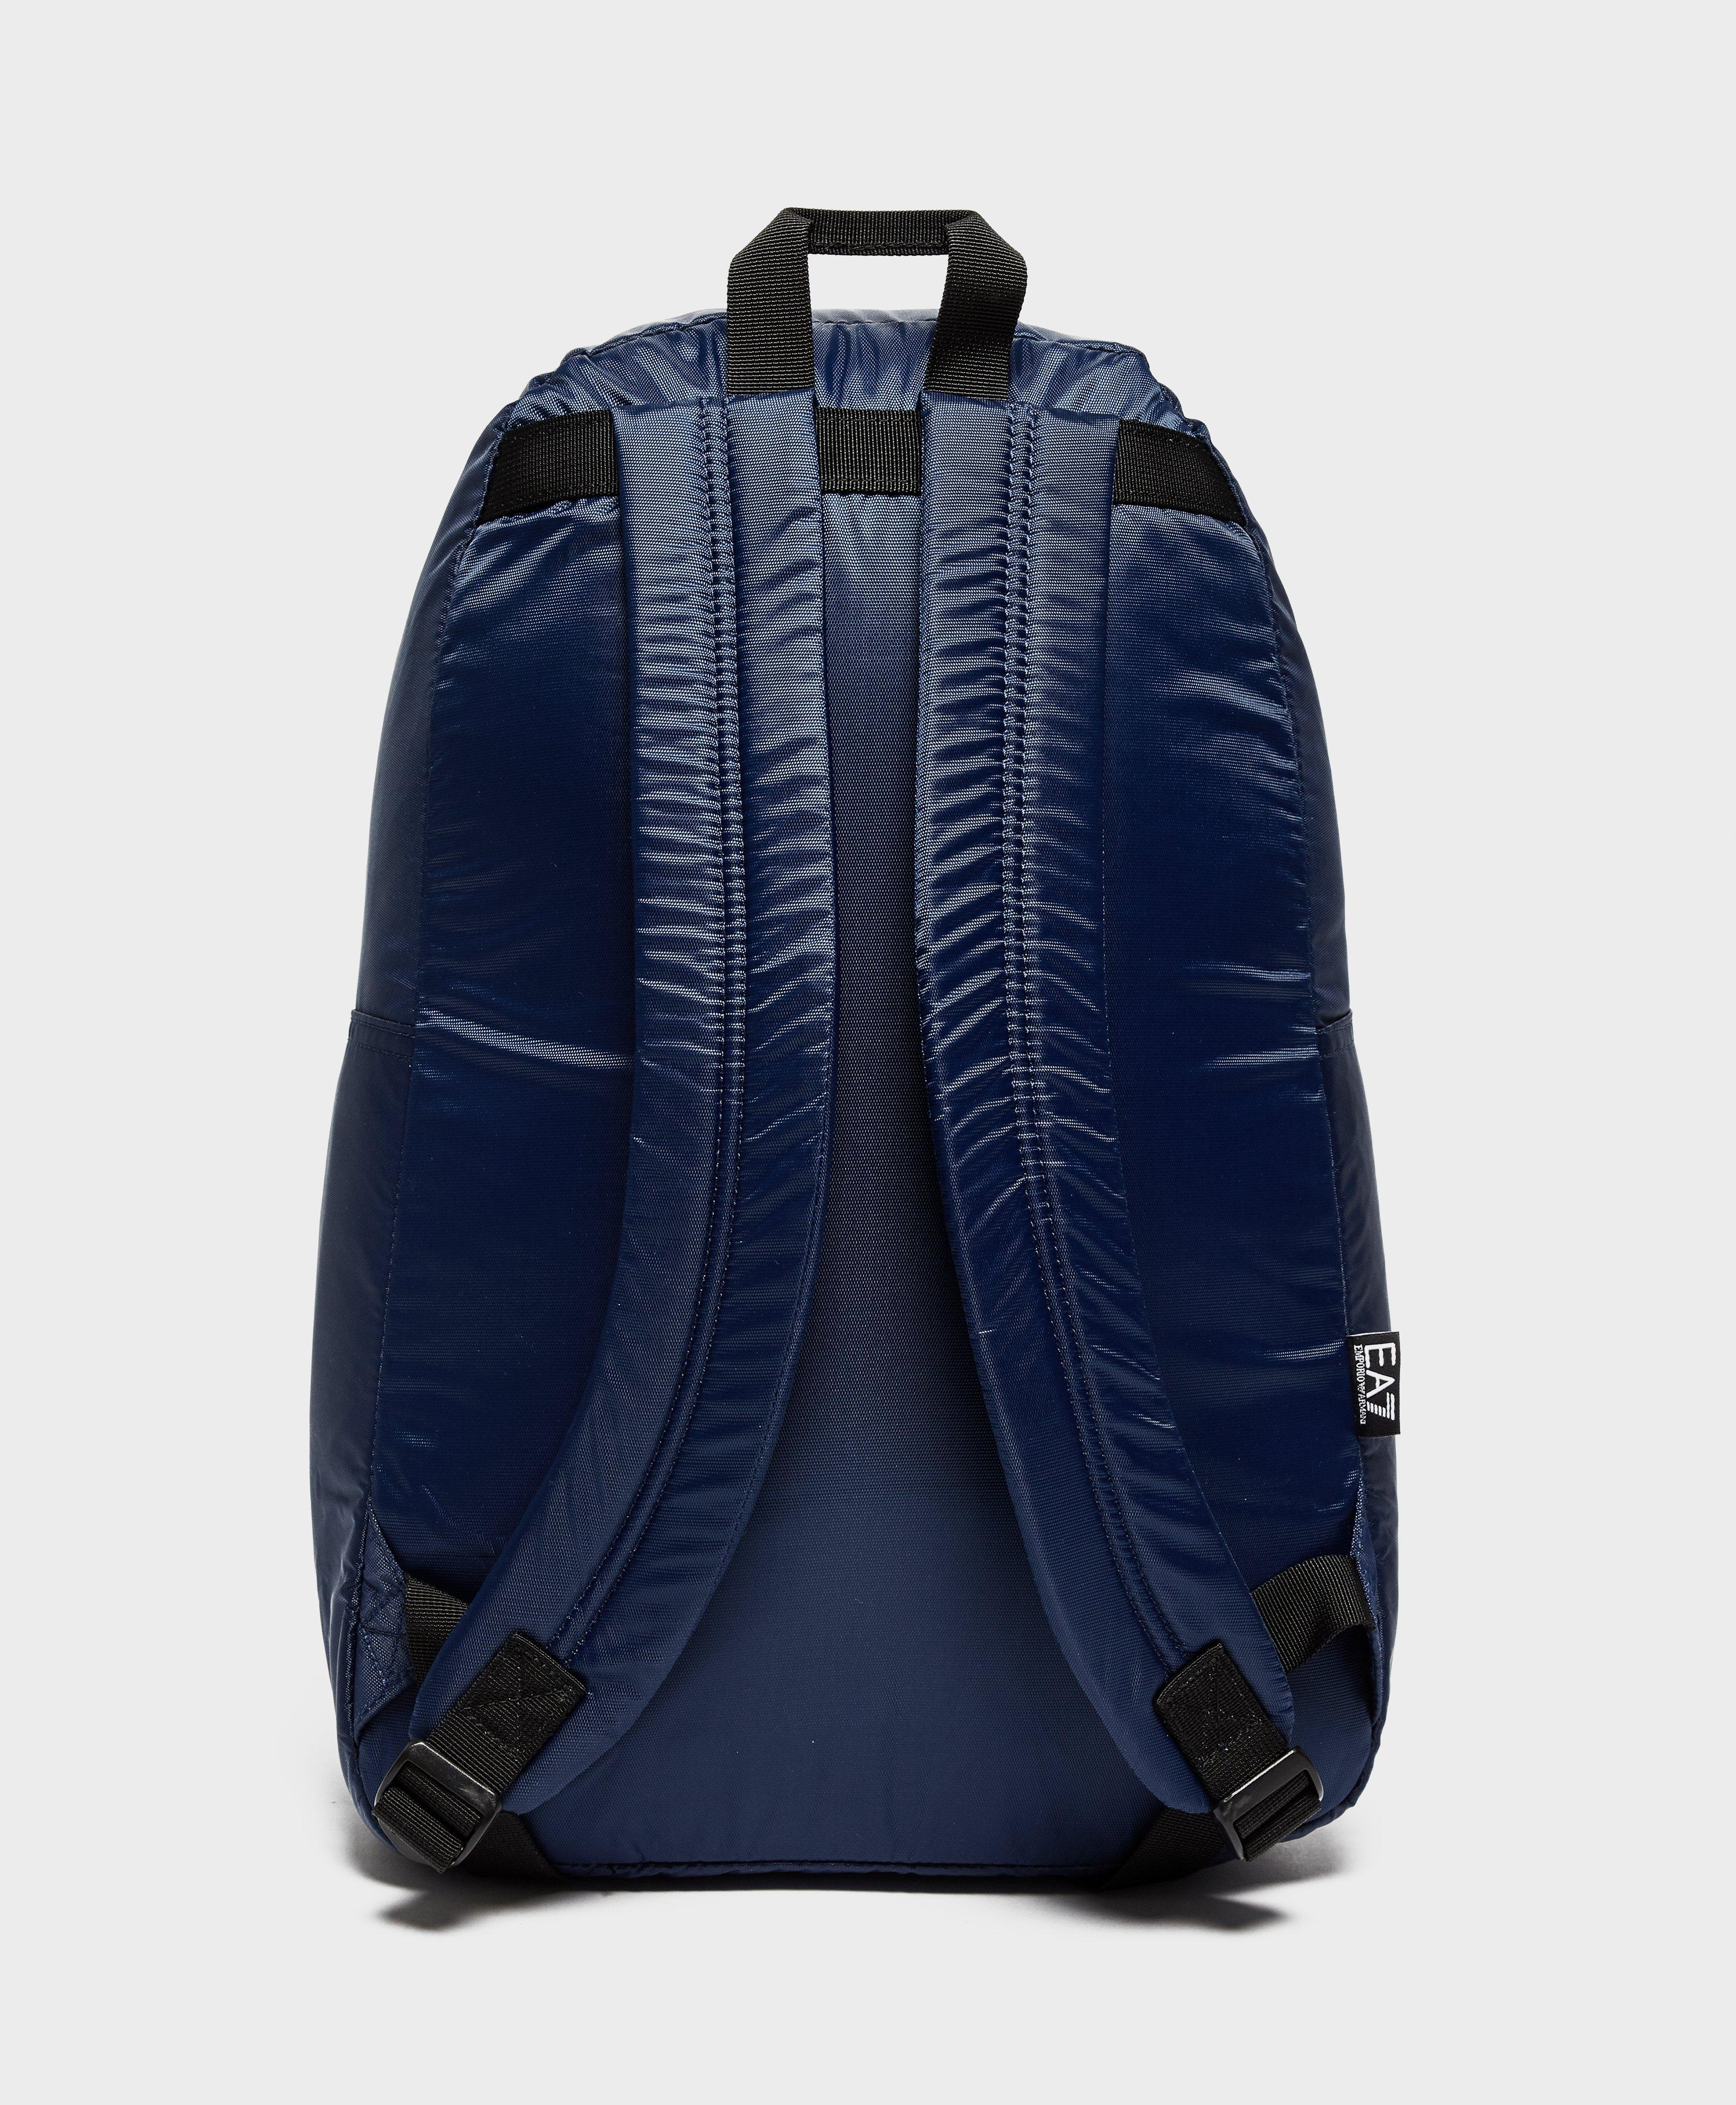 Lyst - EA7 Train Core Backpack in Blue for Men 015c5950bc7c1